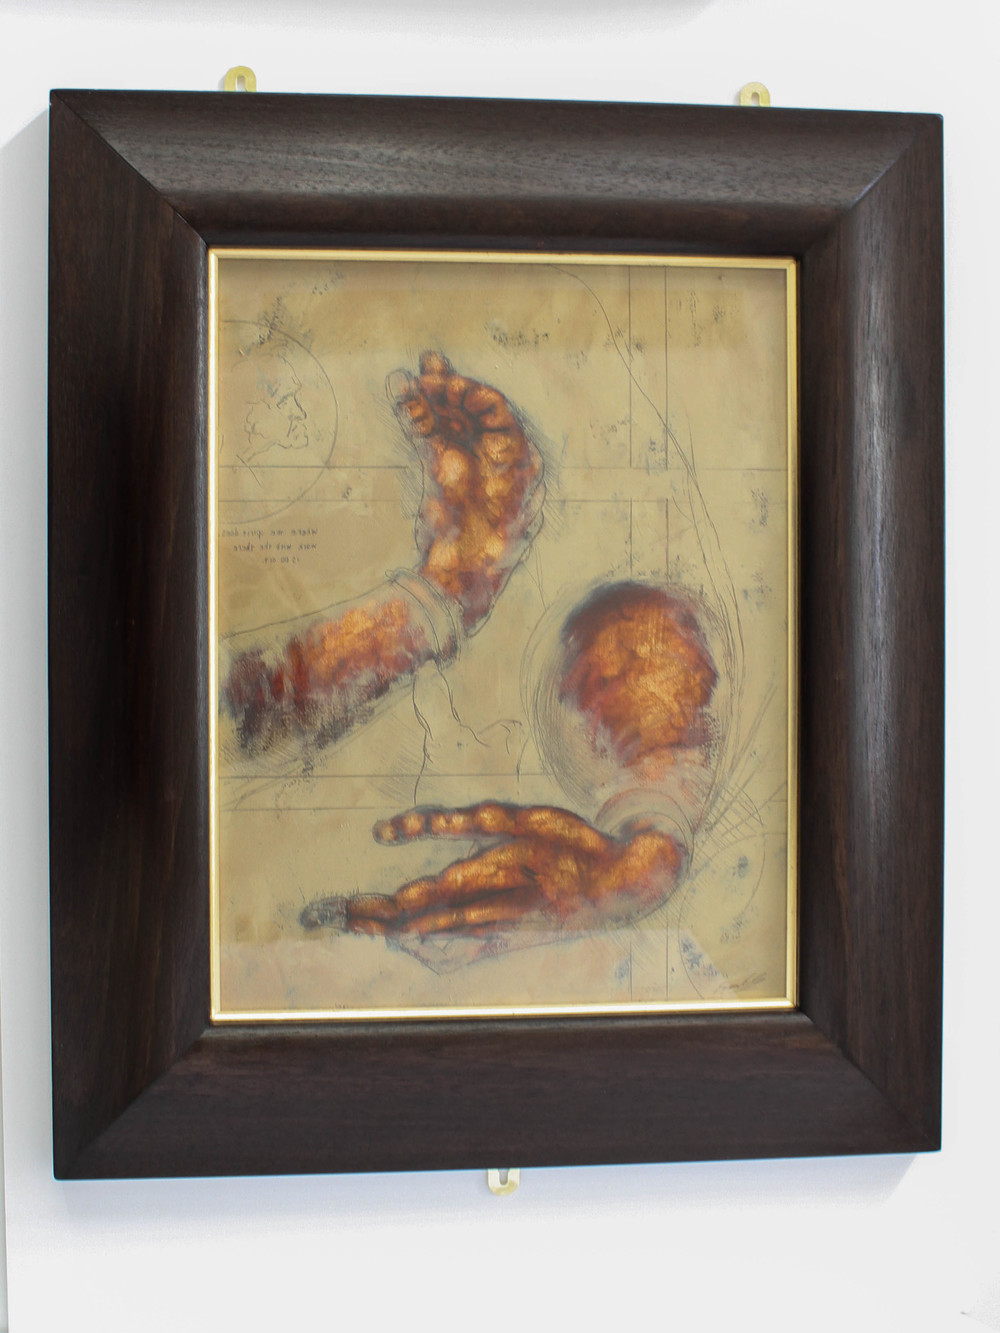 LOT 17 Frank To After Da Vinci – Study of Woman's Hands Oil on Paper